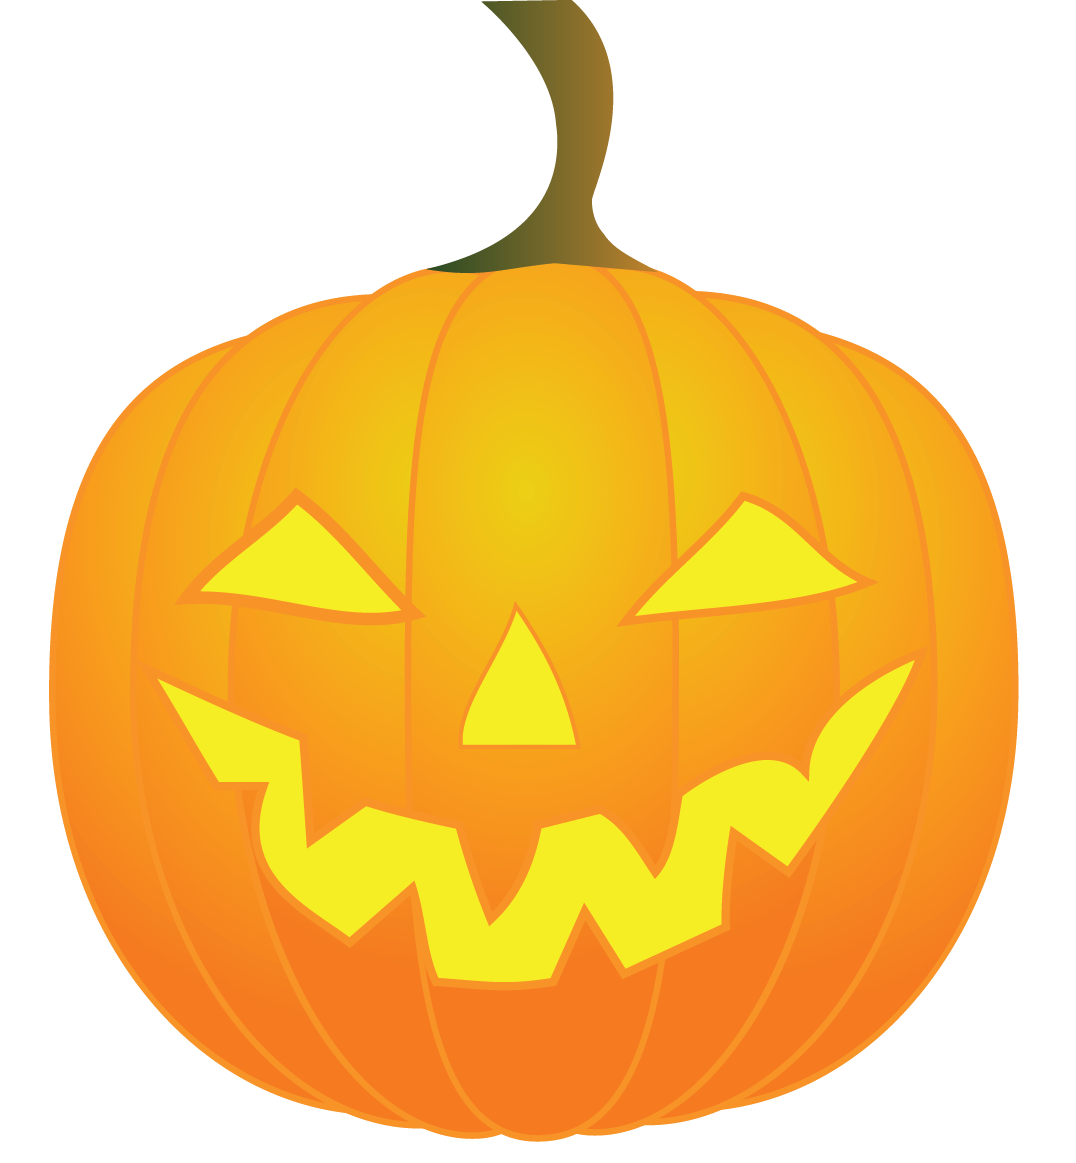 Thanksgiving pumpkins and gords clipart png transparent Evil Pumpkin Clipart | Free download best Evil Pumpkin Clipart on ... png transparent